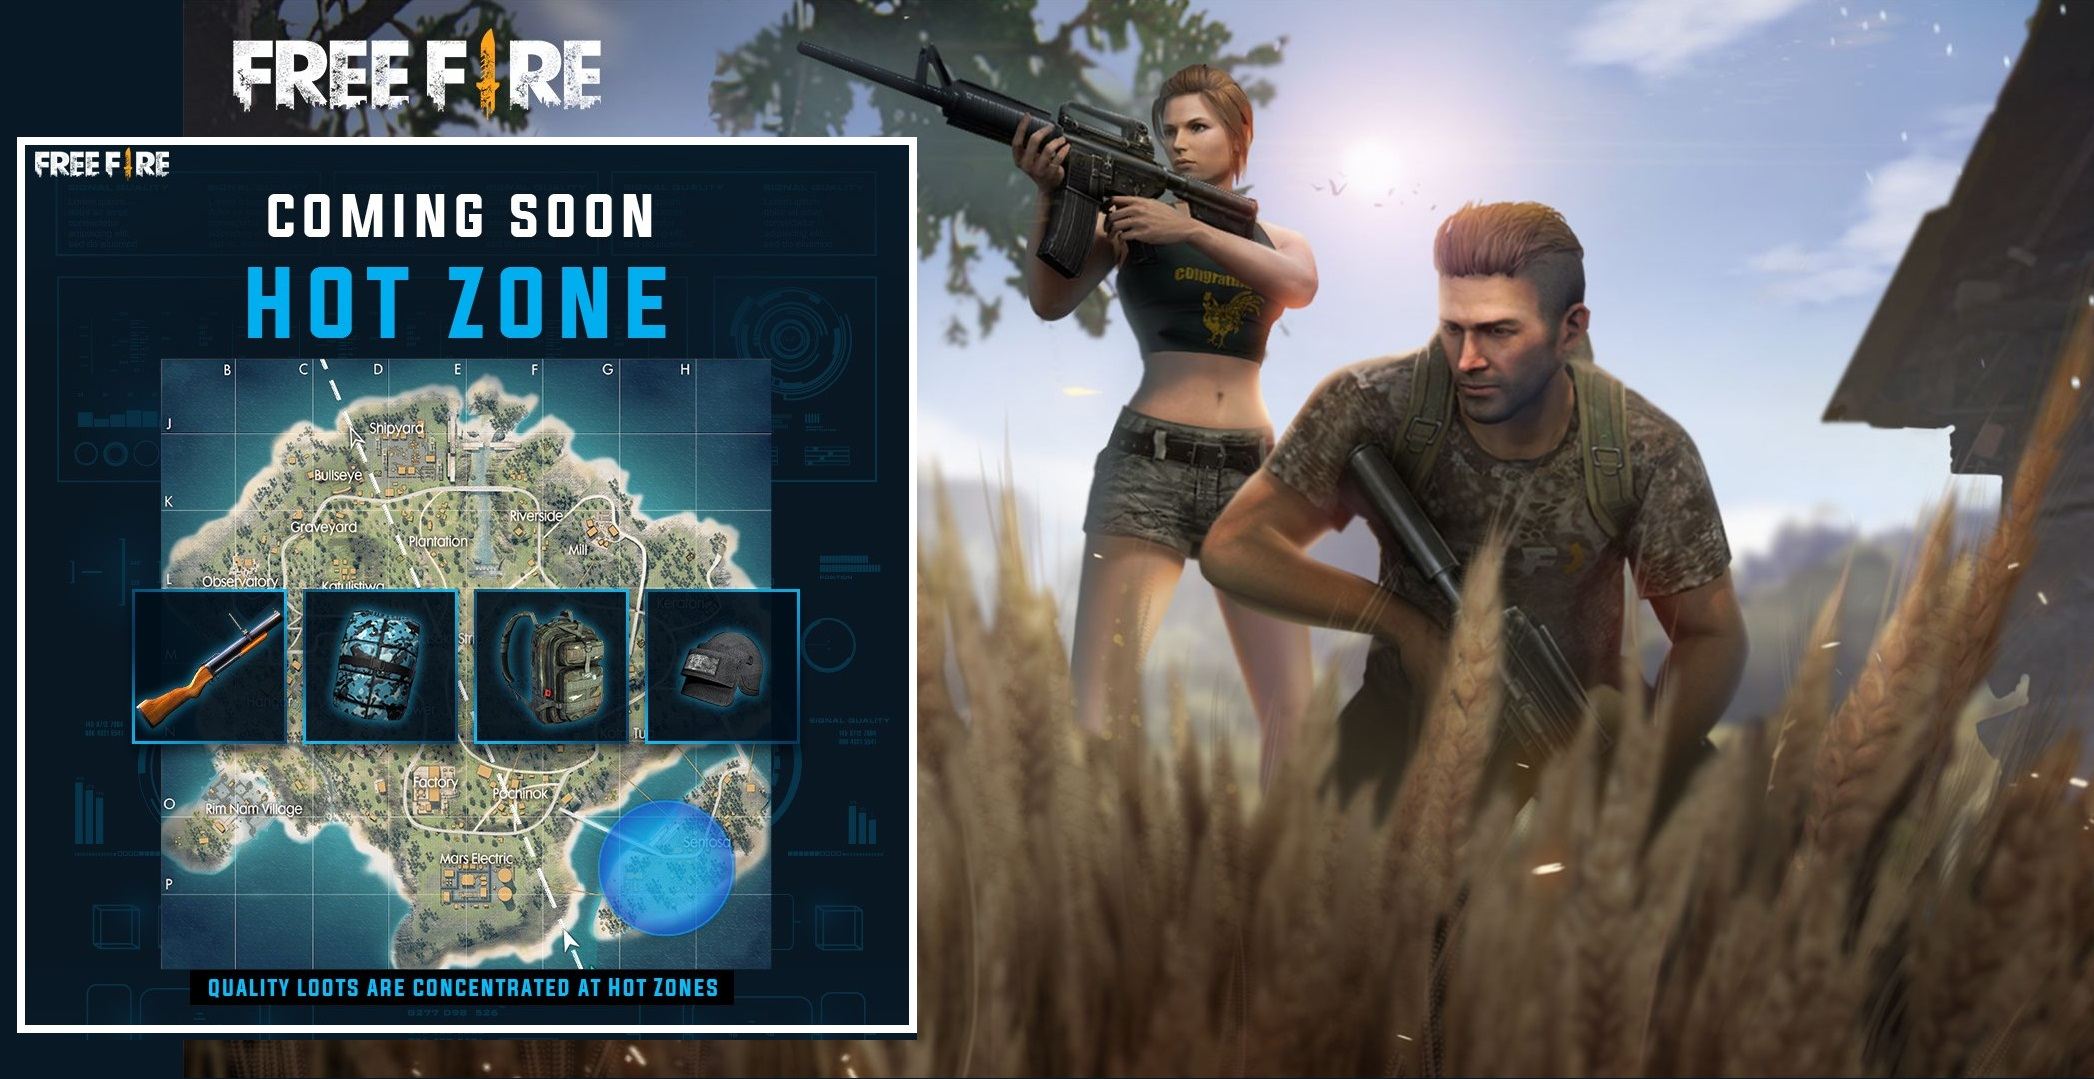 Garena Free Fire is soon adding 'Hot Zone' in the game